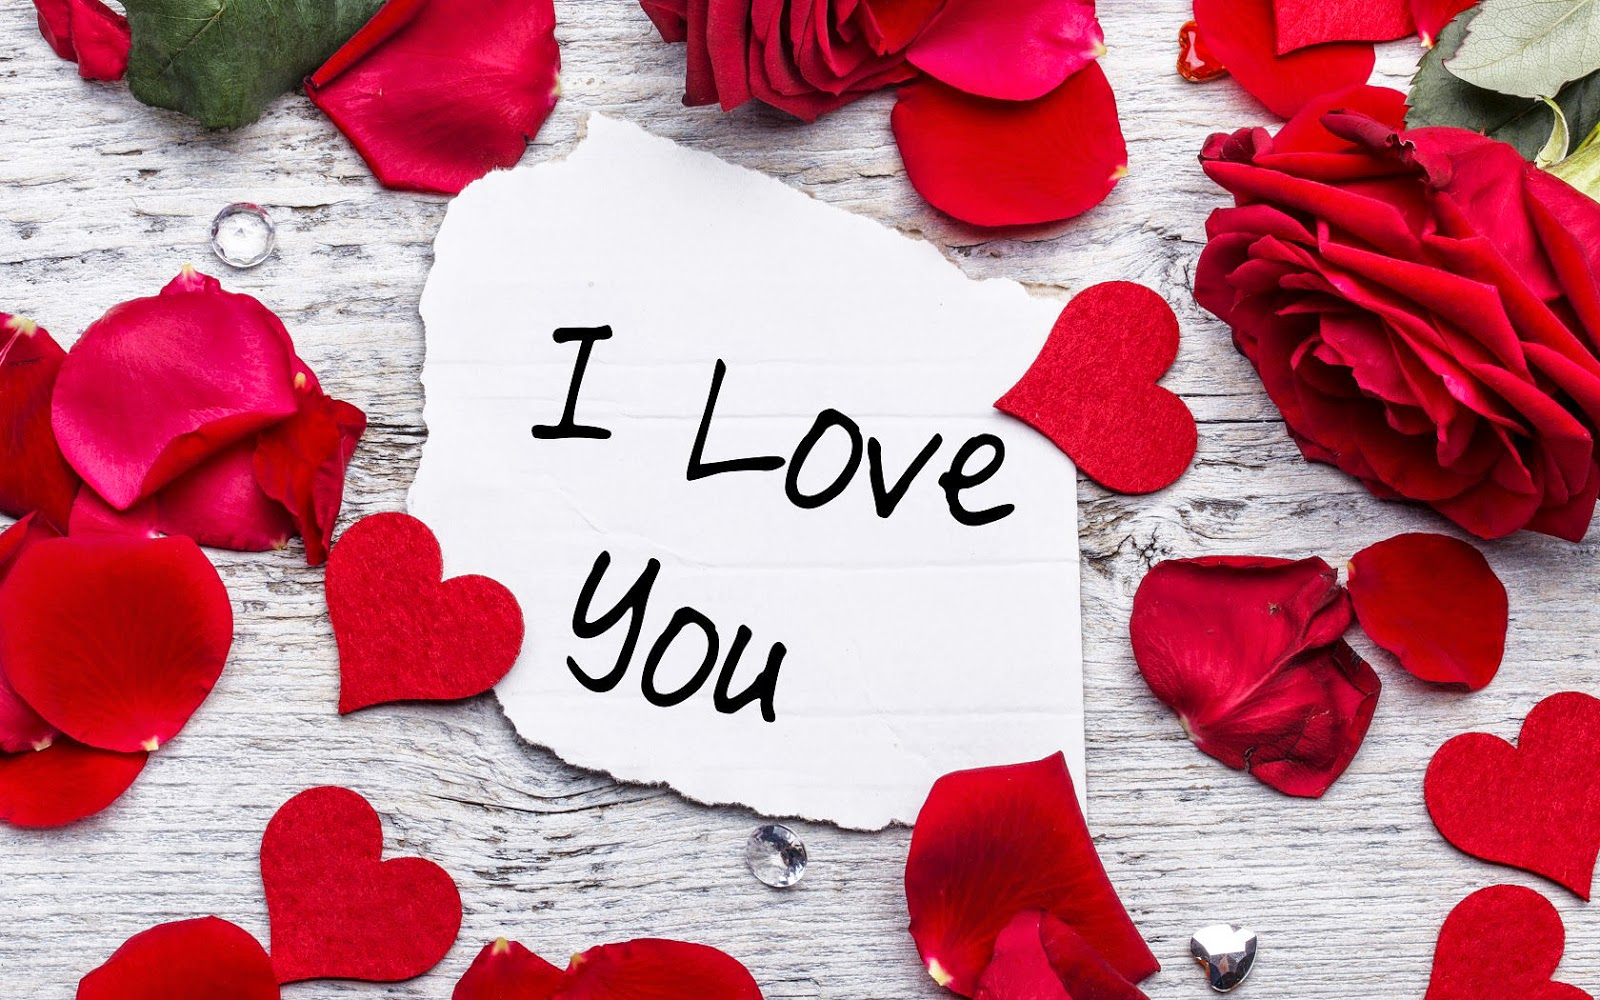 L Love You Hd Wallpaper : HD Liebe herzen wallpapers HD Hintergrundbilder